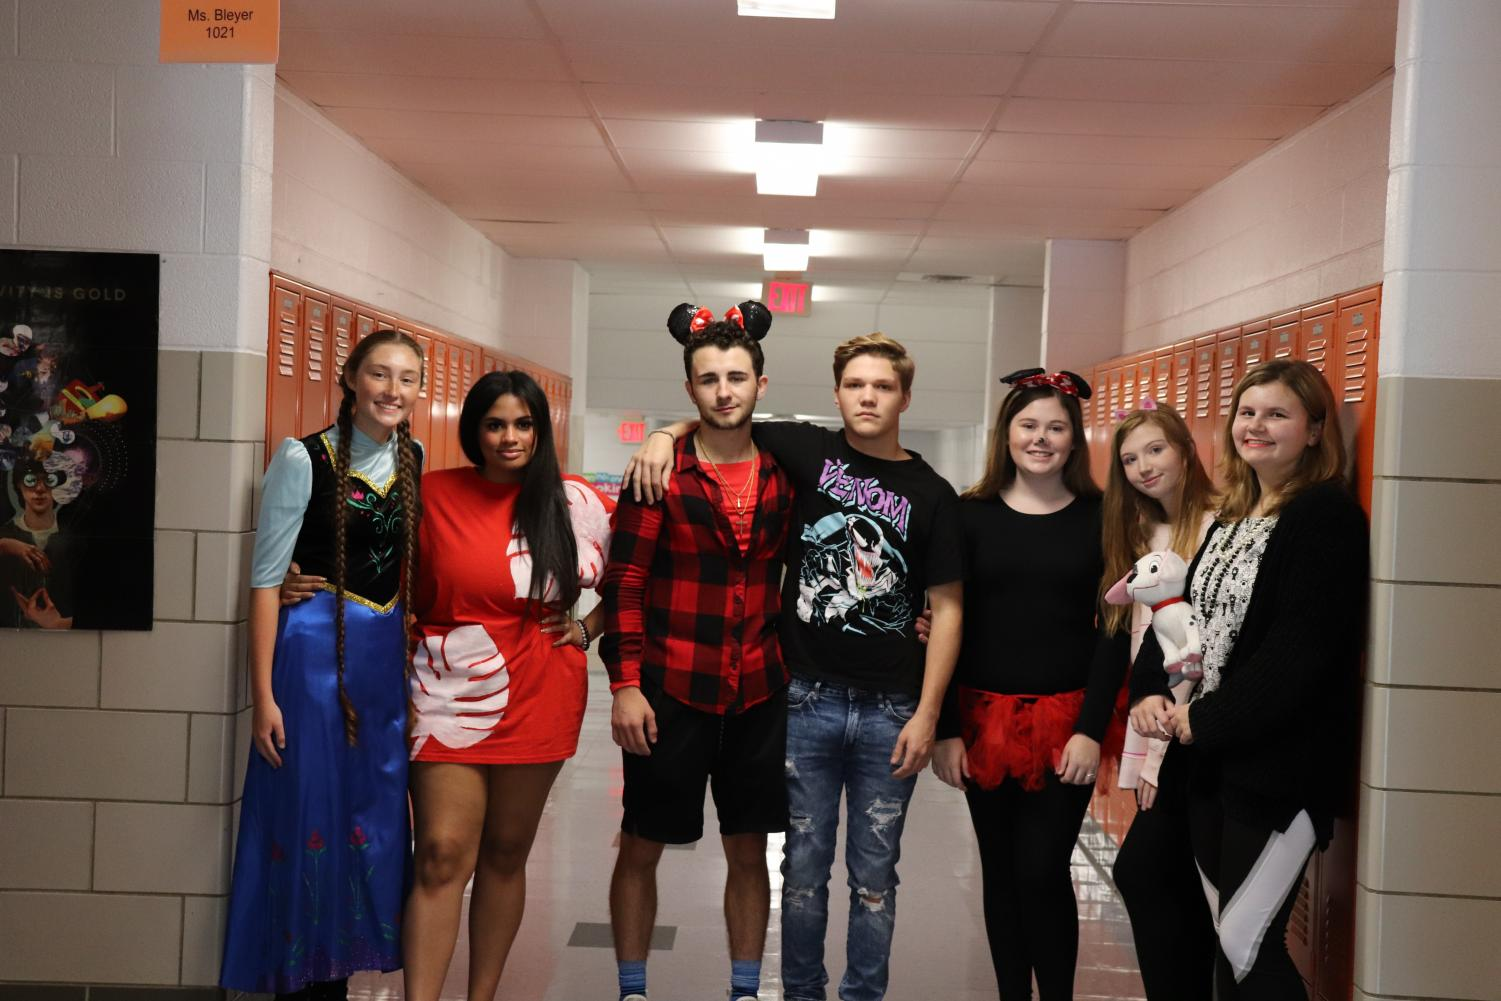 Ms. Bleyer's class enjoys dressing up for Disney Day on Wednesday.